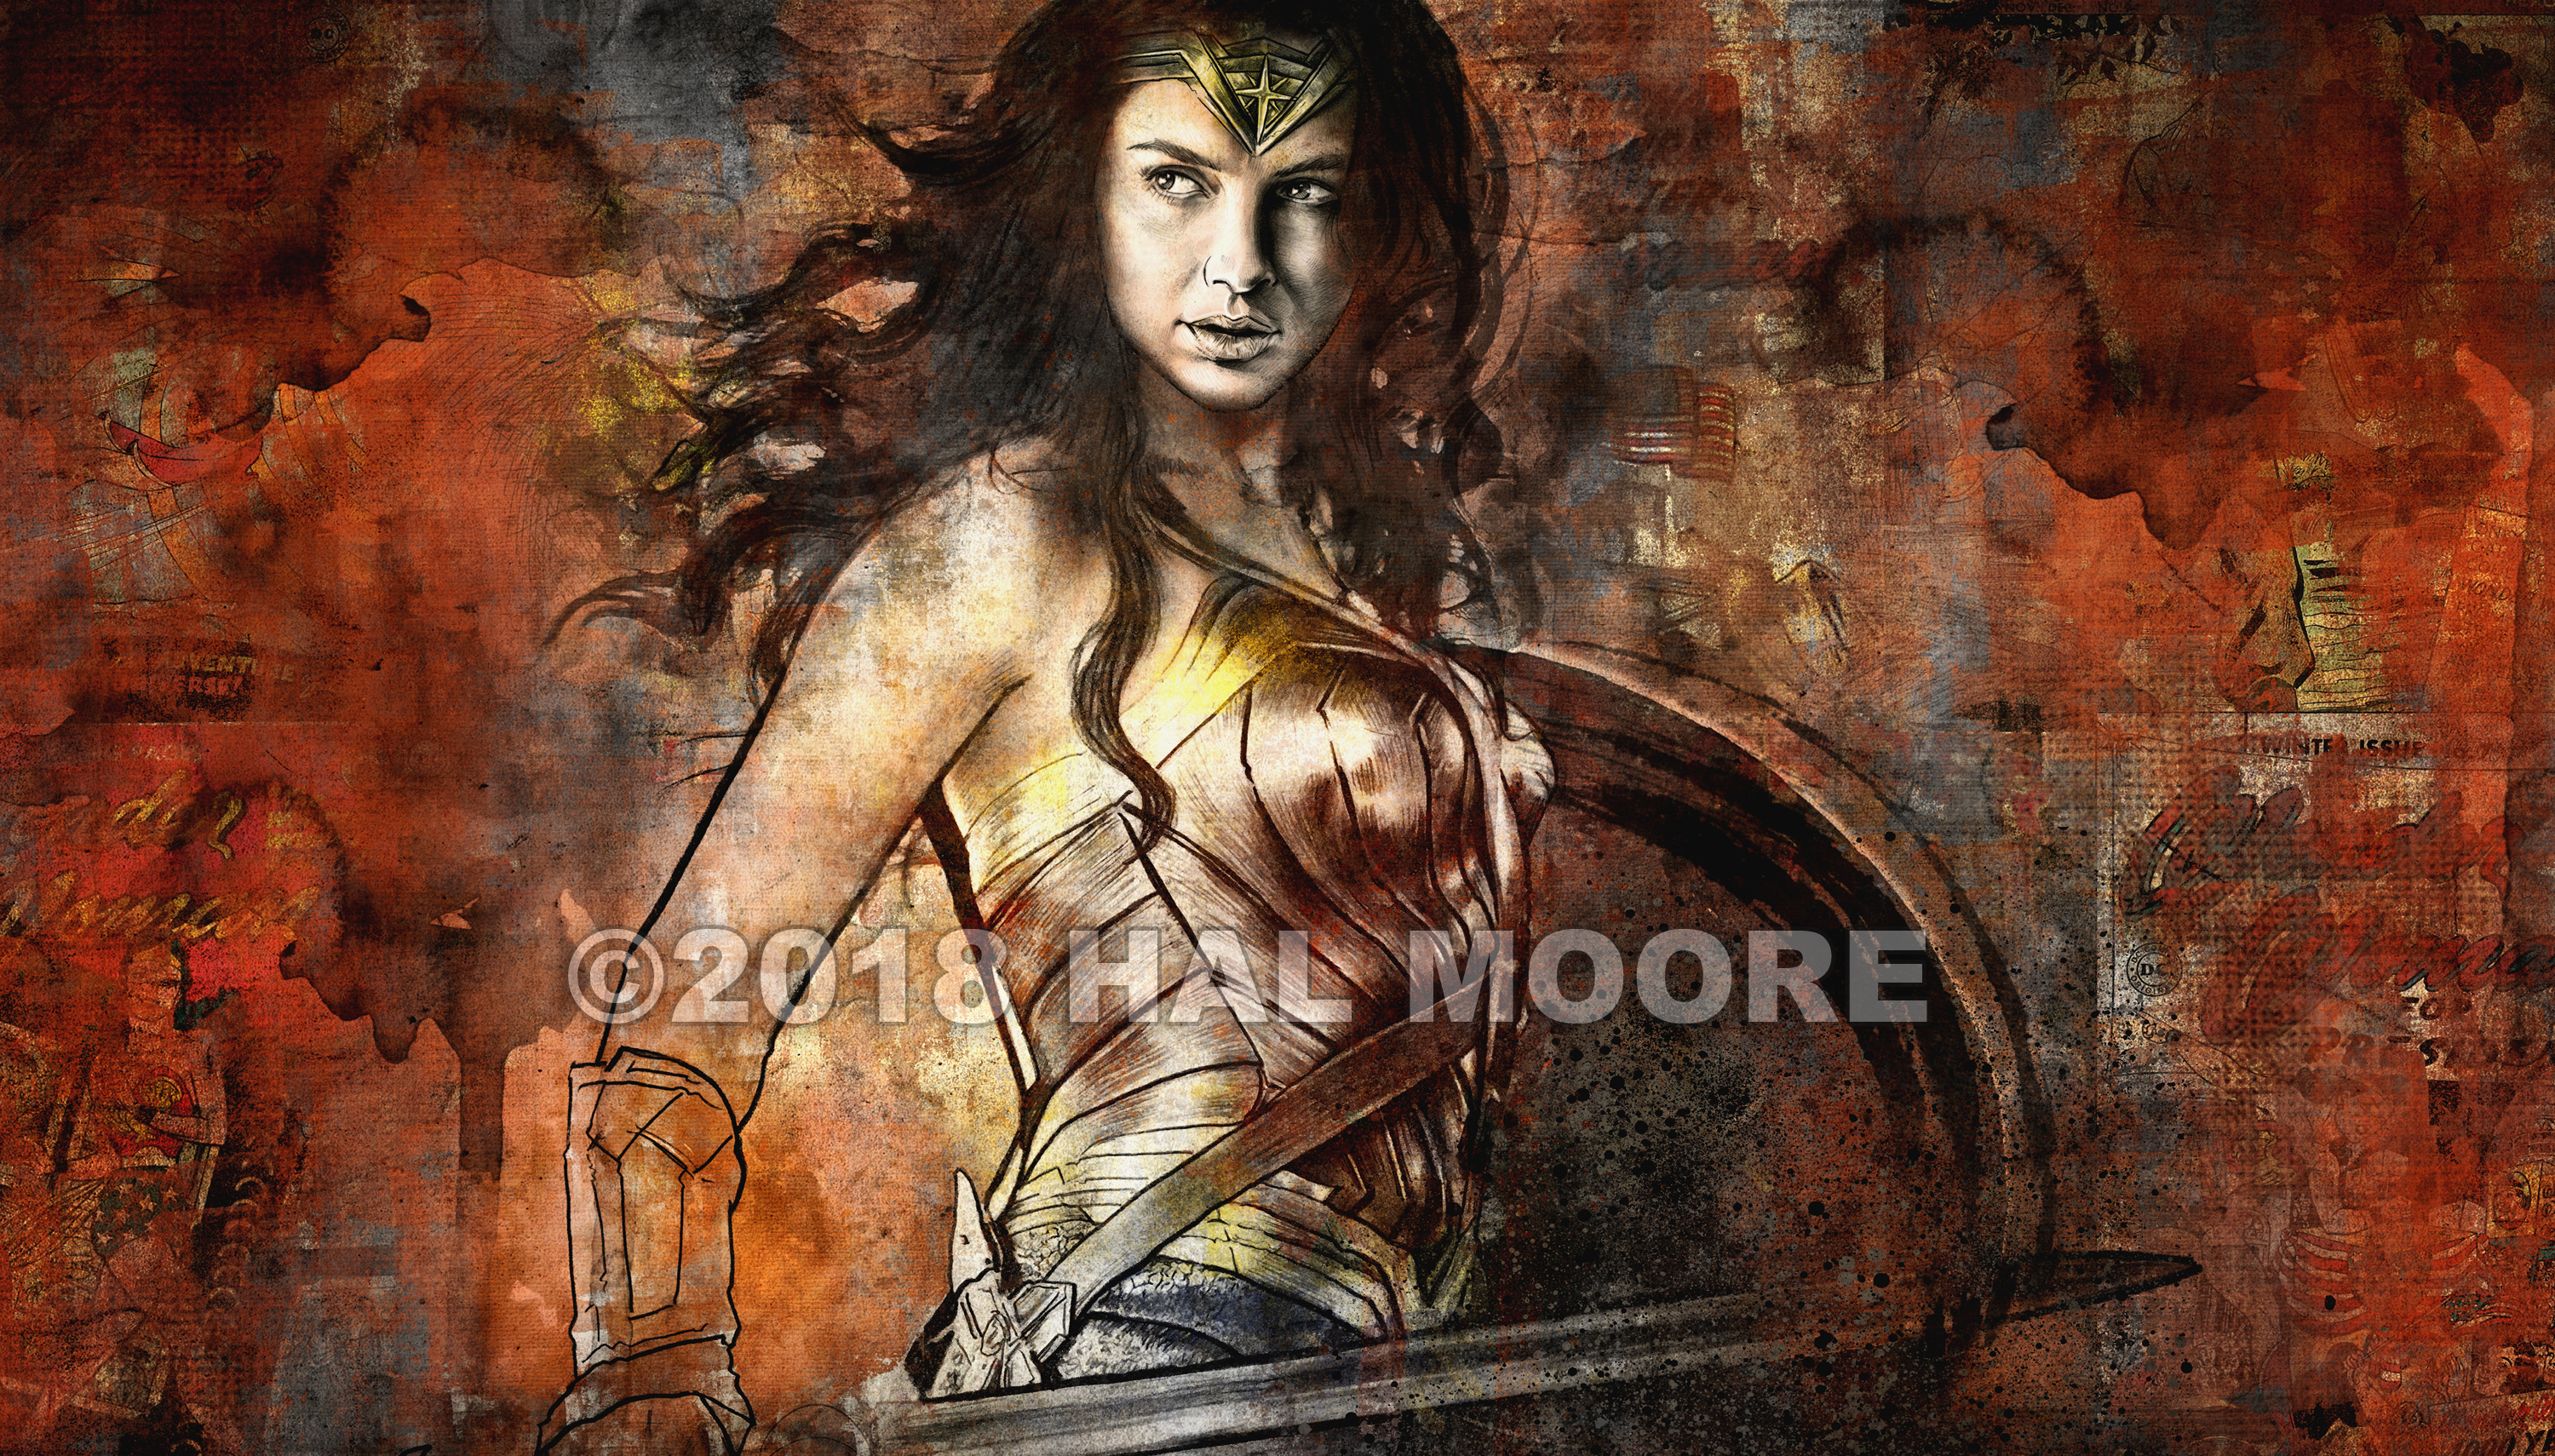 WONDERWOMAN facebook